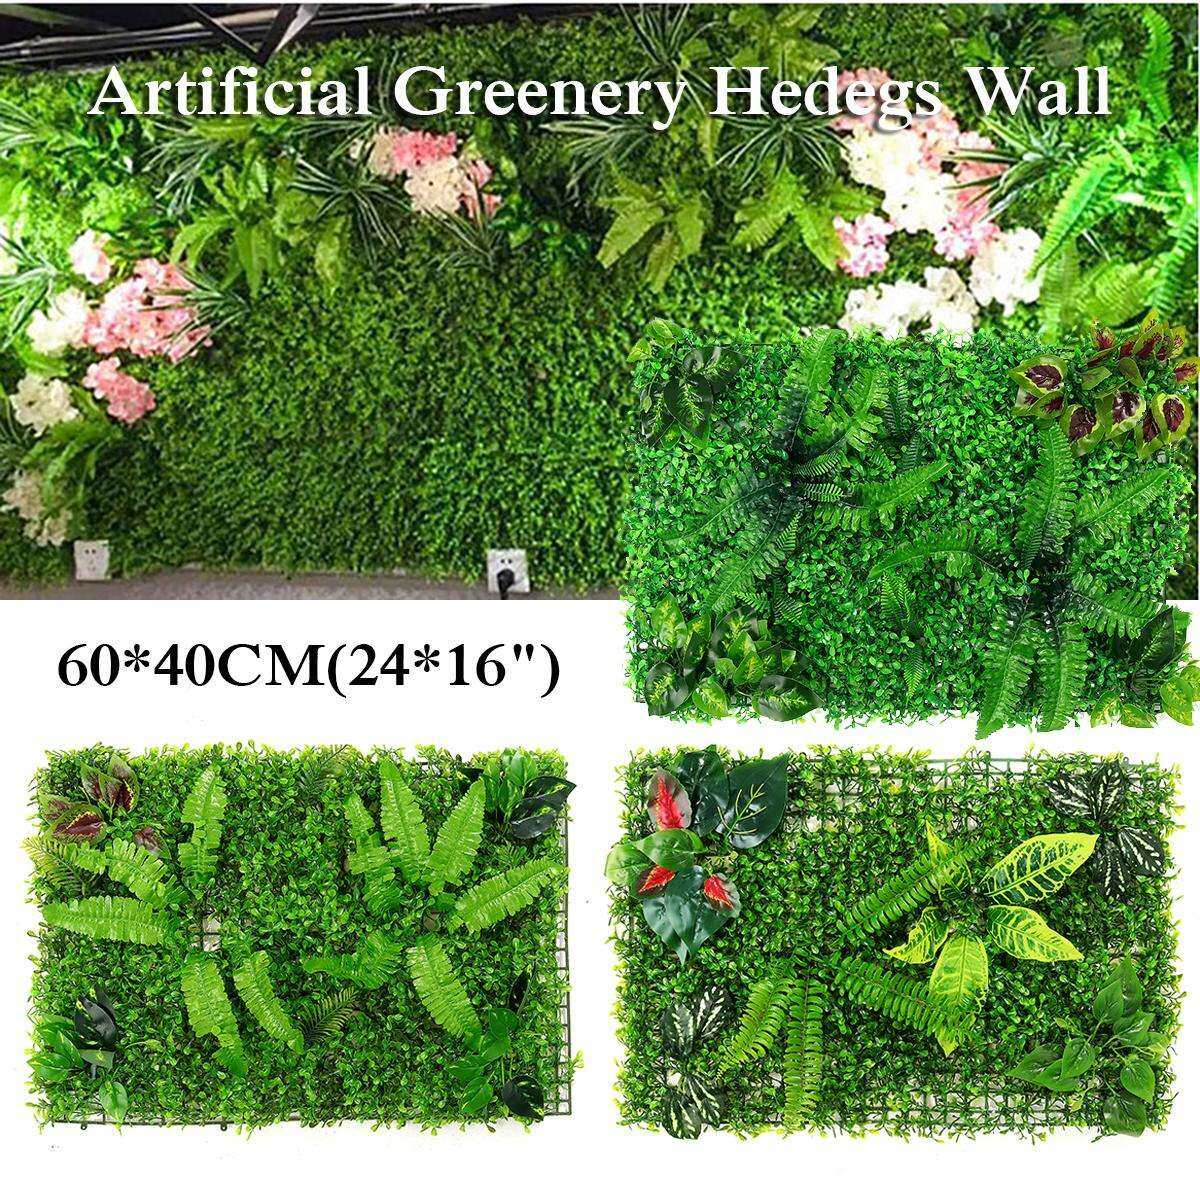 Artificial Topiary Hedges Panels Plastic Faux Shrubs Fence Mat Greenery Wall Backdrop Decor Garden Privacy Screen Fence Plants Lazada Ph